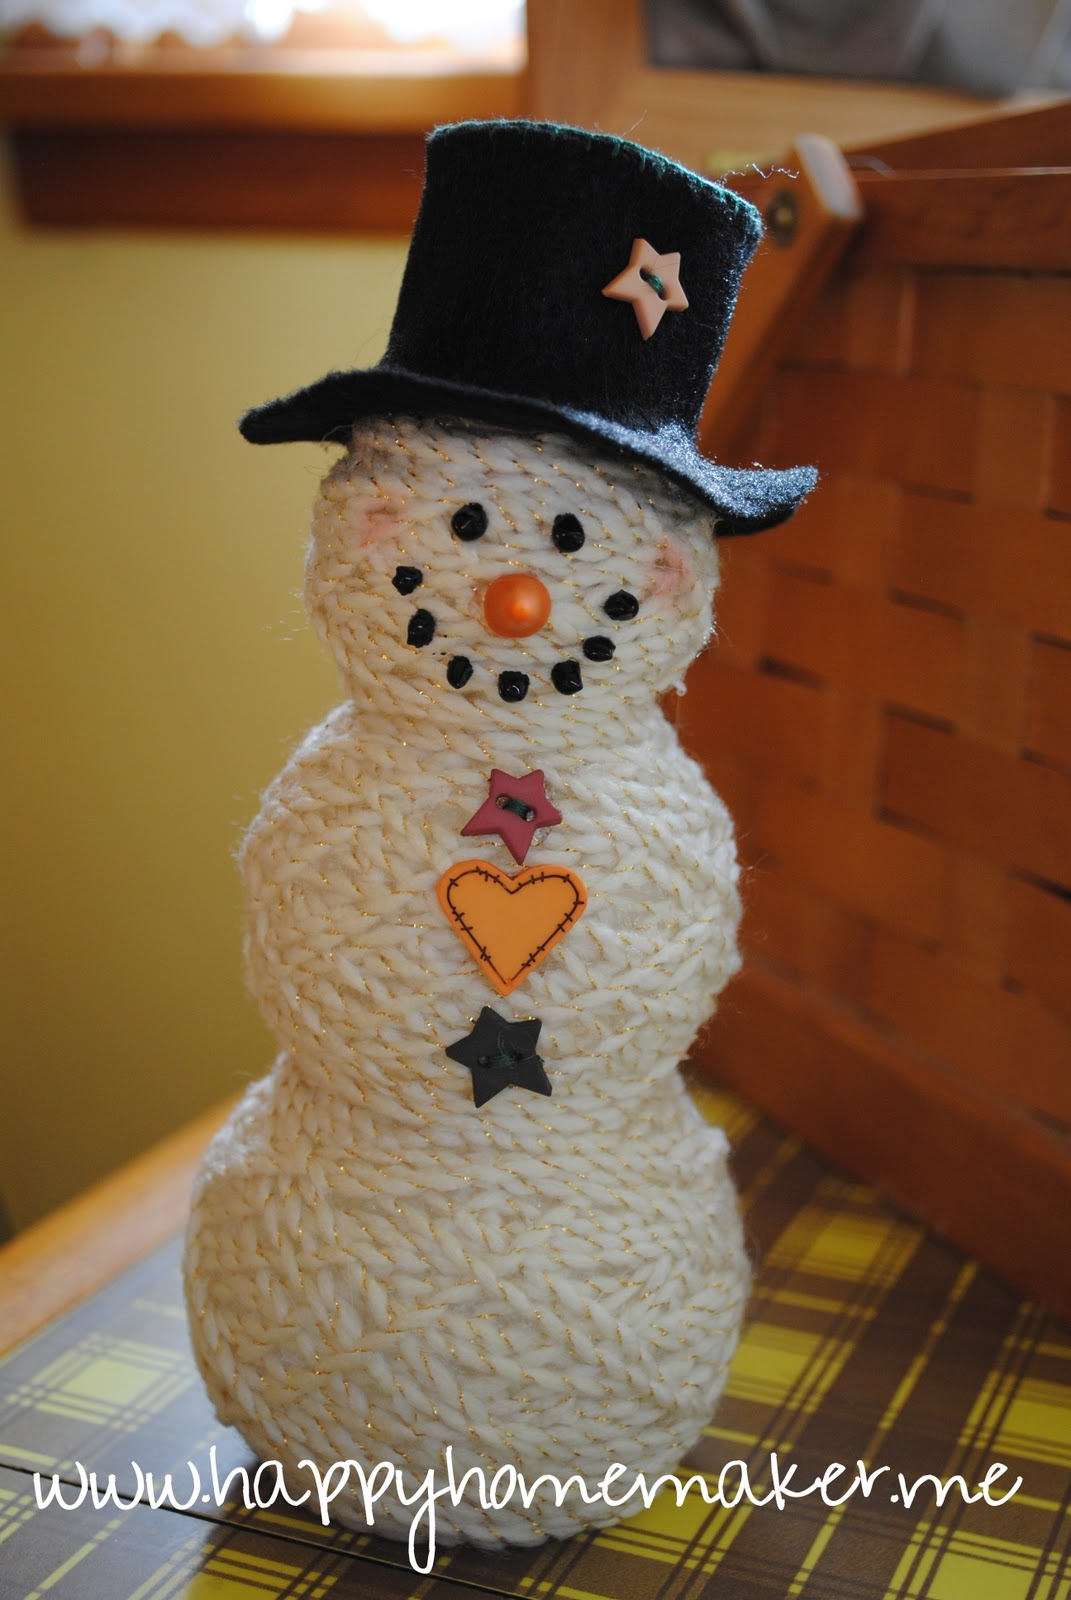 Easy Snowman Snack: Happy Homemaker Me: Merry [home] Making Day 1: Yarn Ball